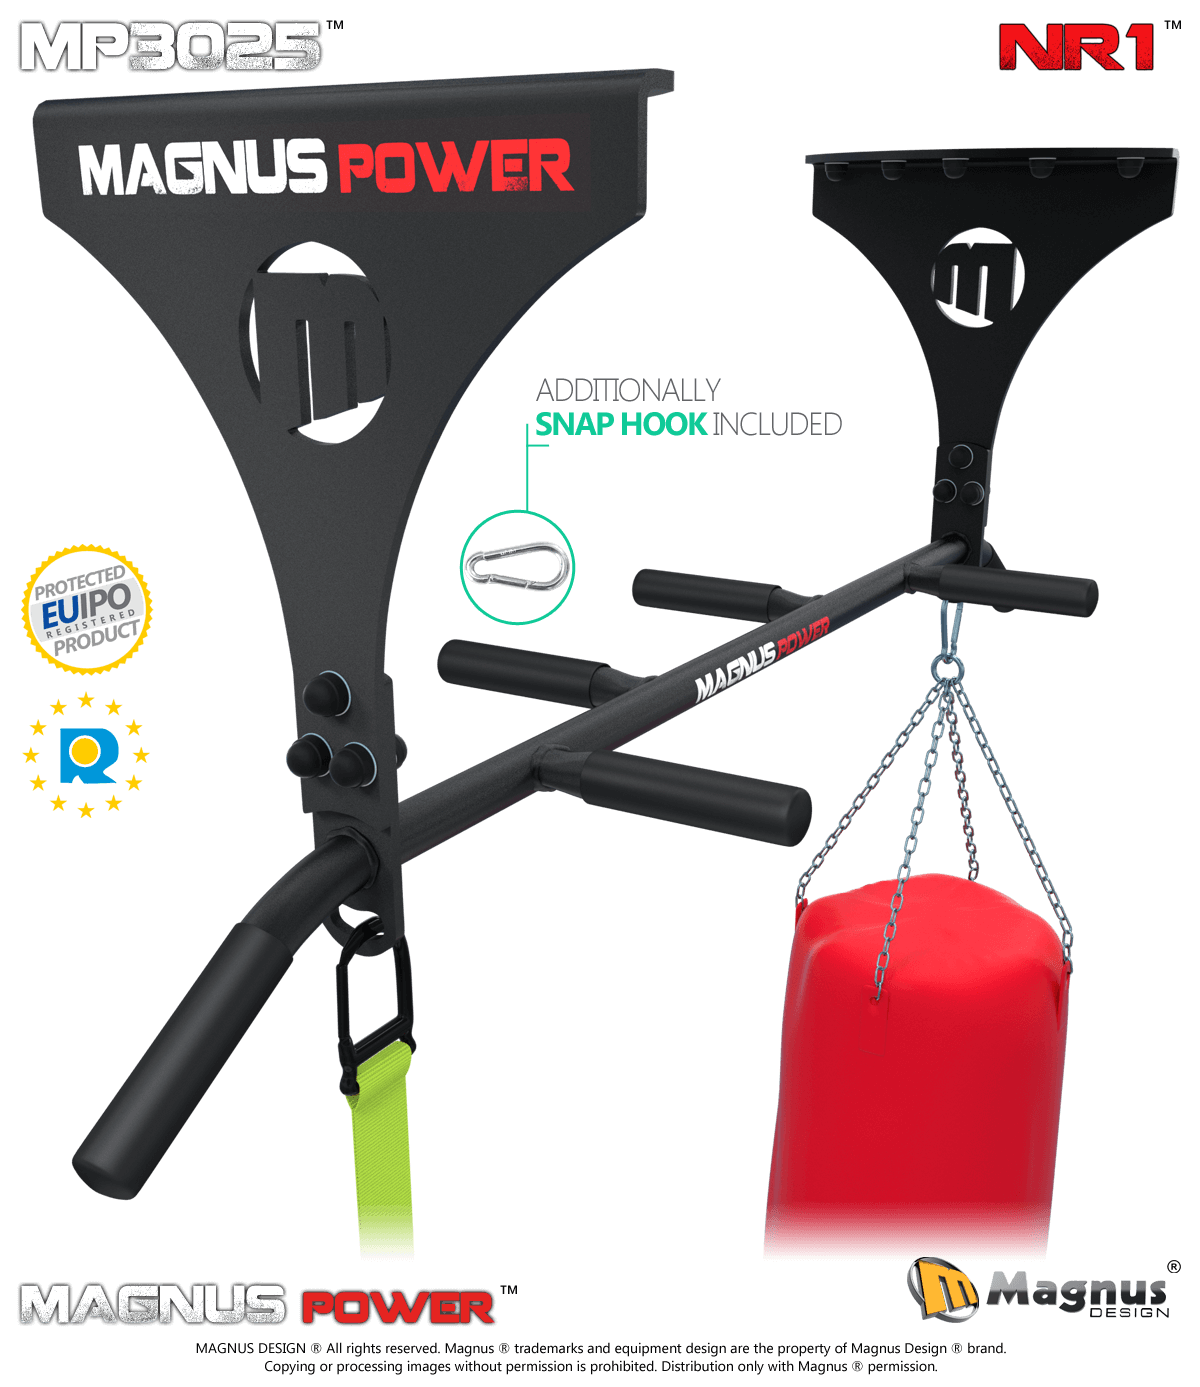 MAGNUS ® MP3025 Laser pull up bar for ceiling NR1